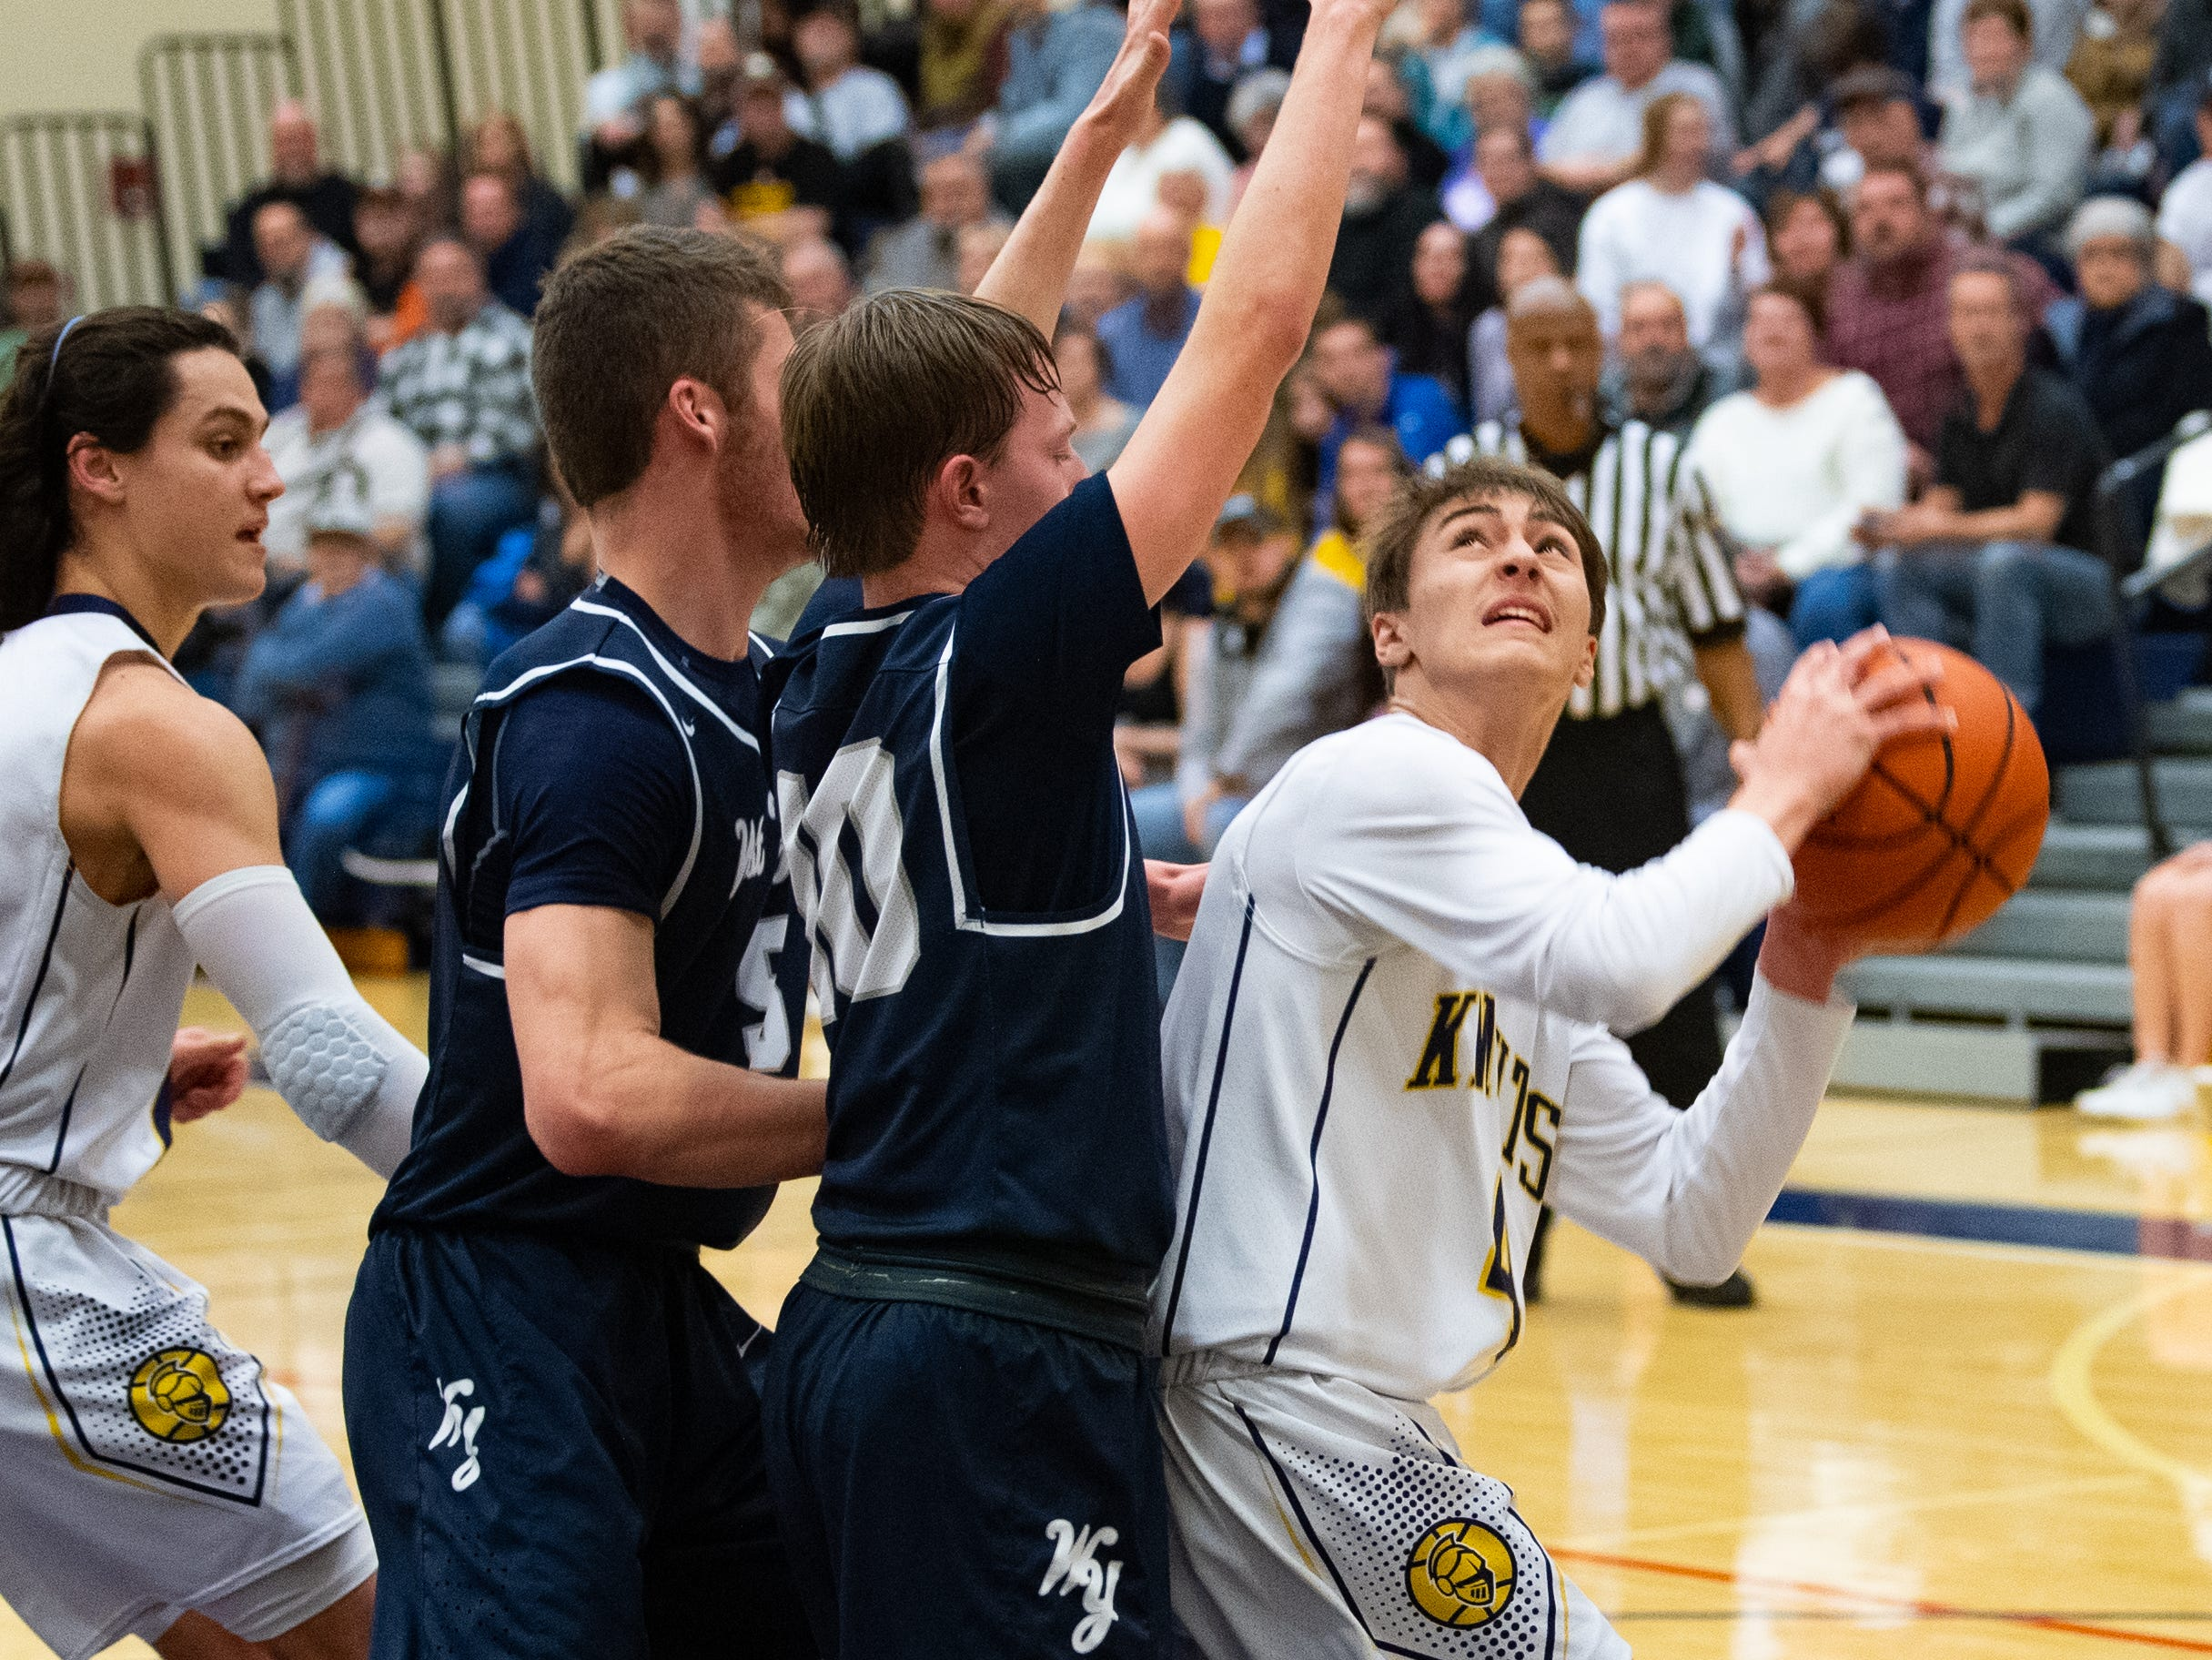 Trevor Seitz (4) looks to get a shot off during the YAIAA boys' basketball game between Eastern York and West York, Friday, January 25, 2019 at Eastern York High School. The Golden Knights defeated the Bulldogs 59 to 55.